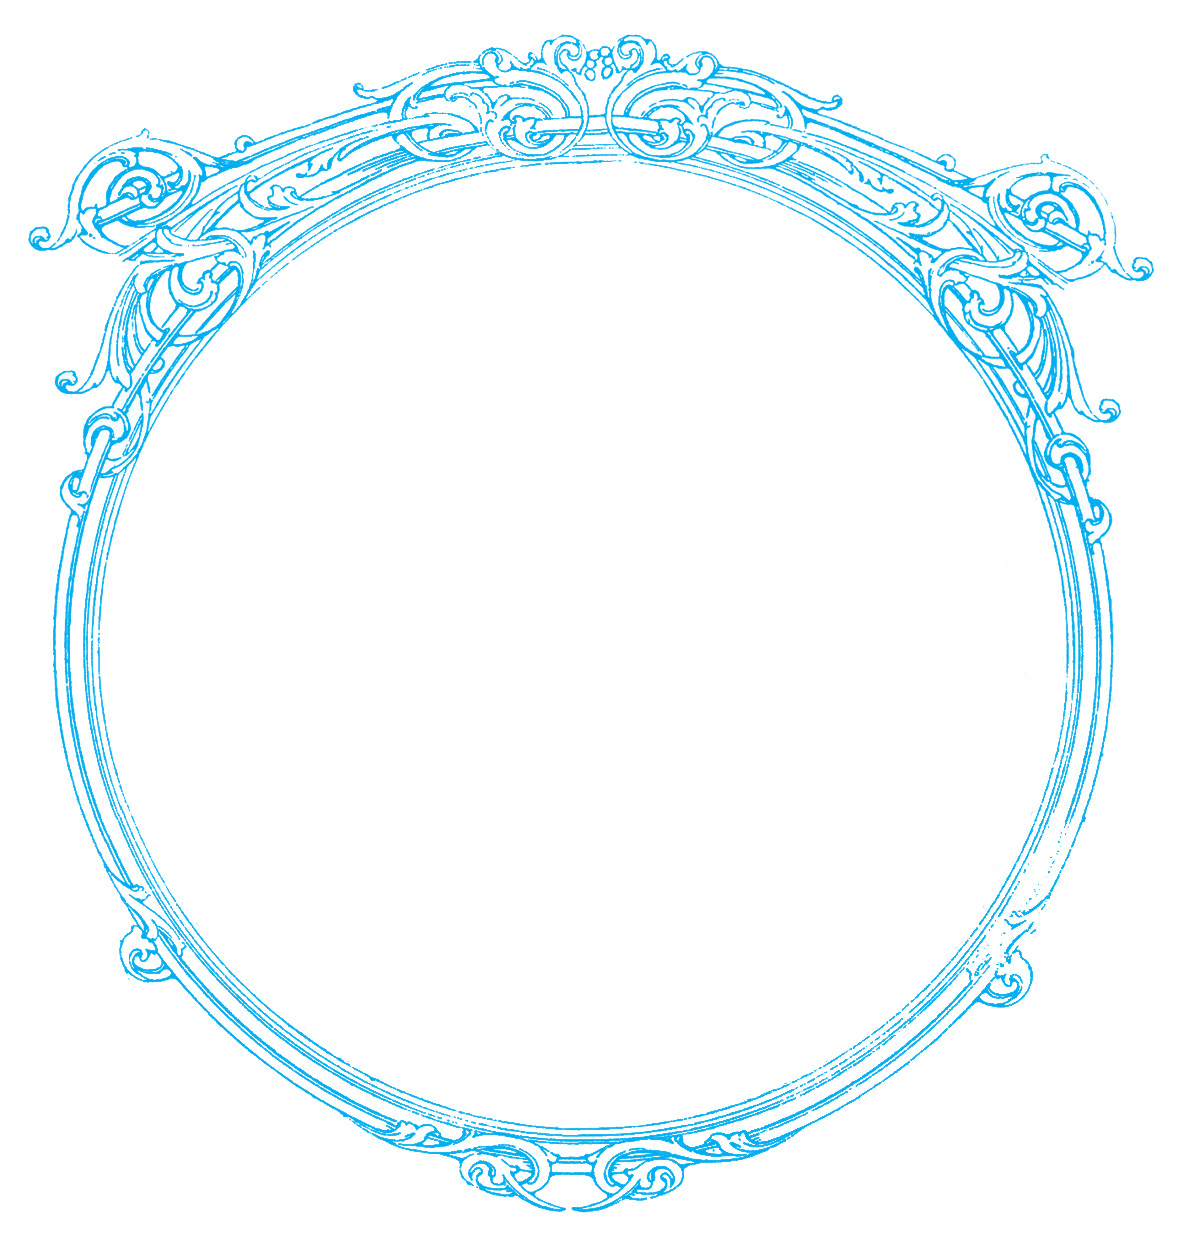 Vintage Images - Round Ornate Frames - The Graphics Fairy